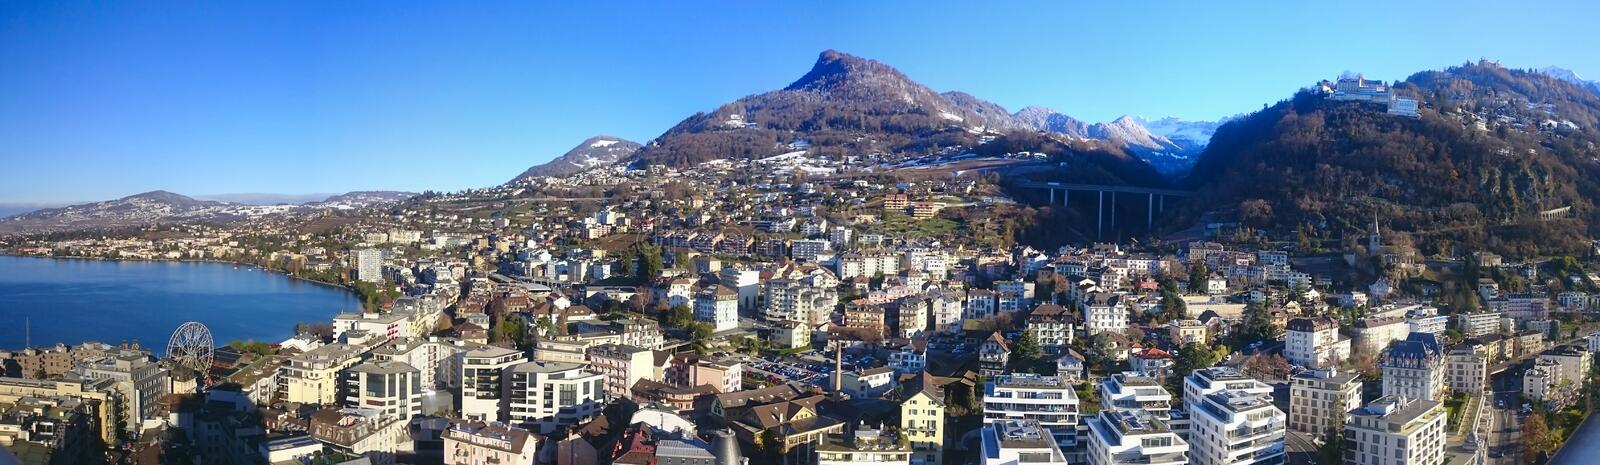 Montreux panoramic view. Panoramic view of the city of Montreux, Lake Geneva and the Alps on a sunny winter day, the canton of Vaud, Switzerland royalty free stock photo